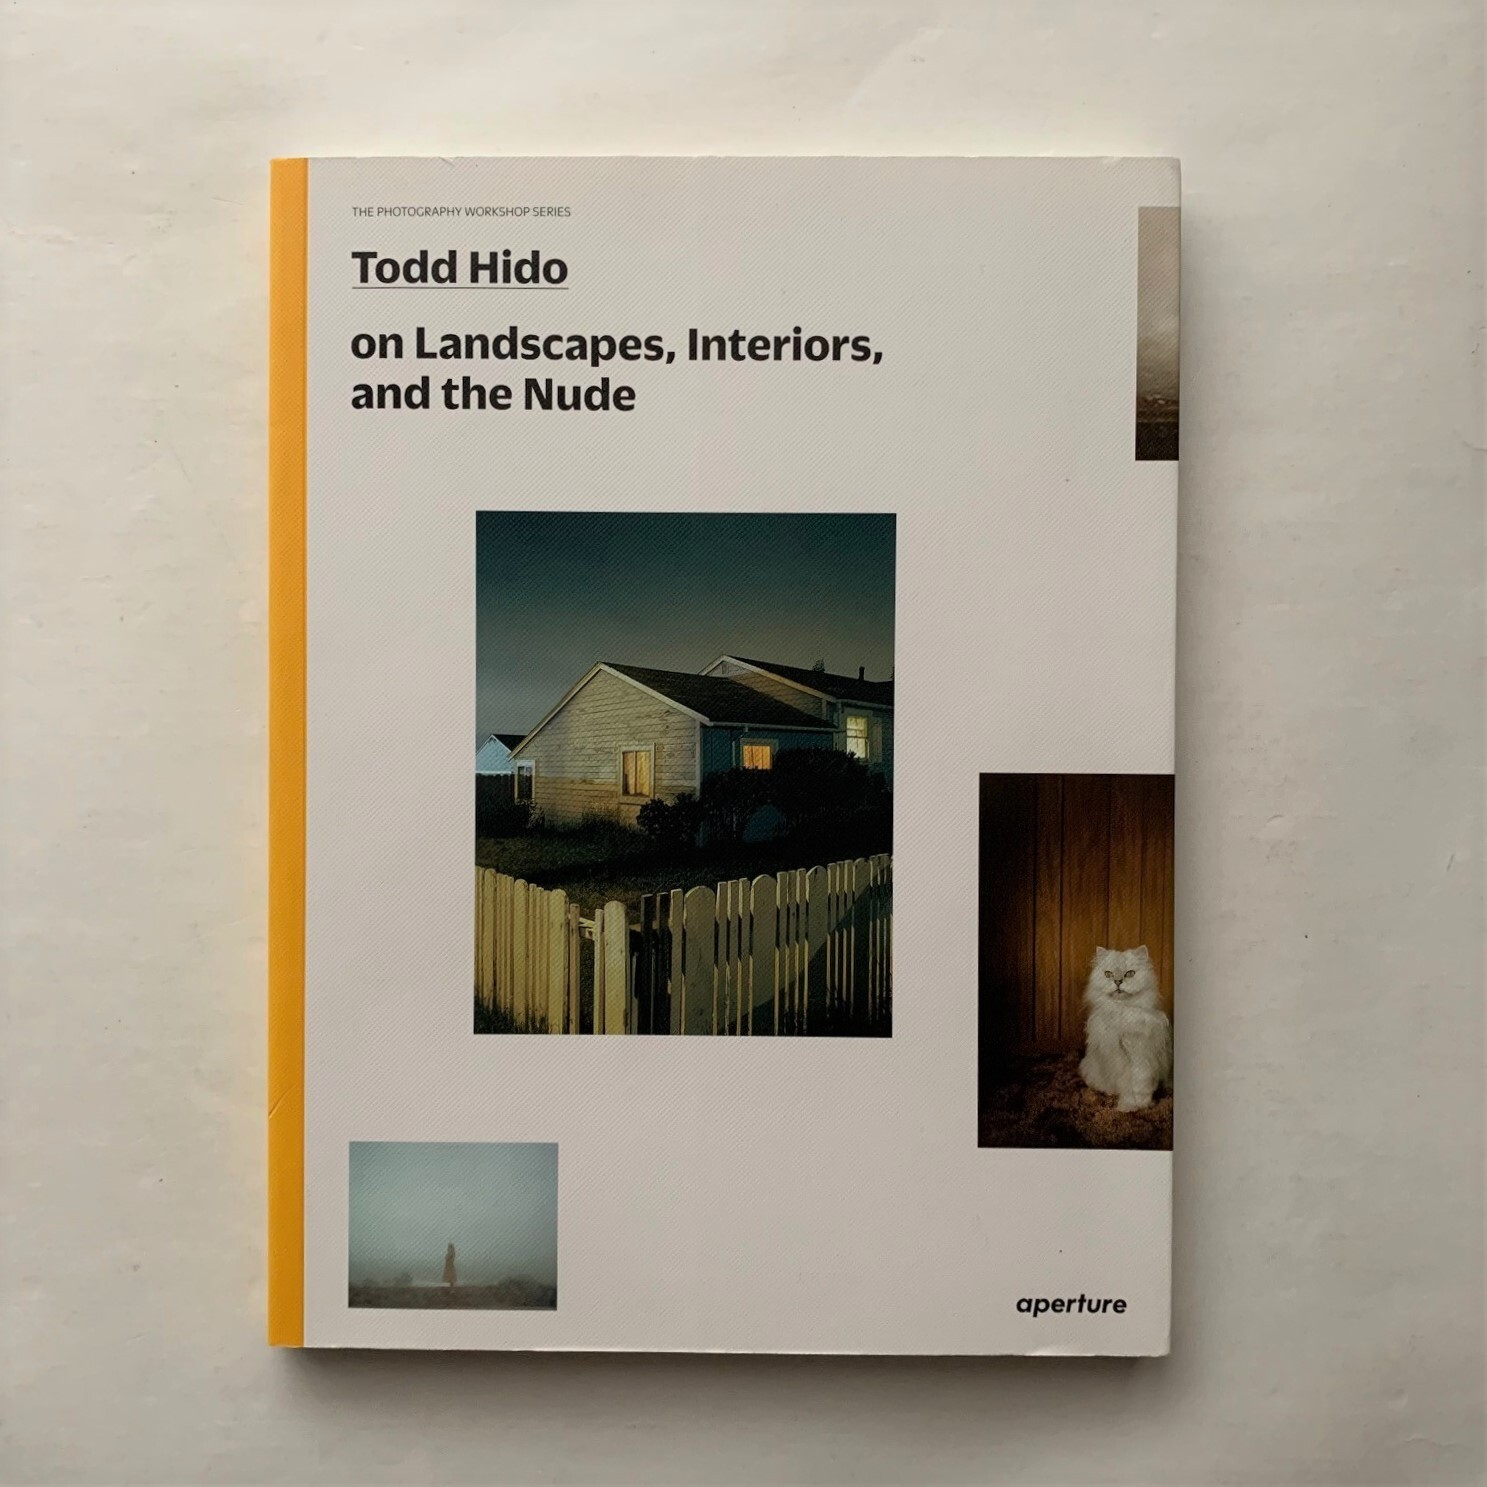 Todd Hido on Landscapes, Interiors, and the Nude / トッド・ハイド